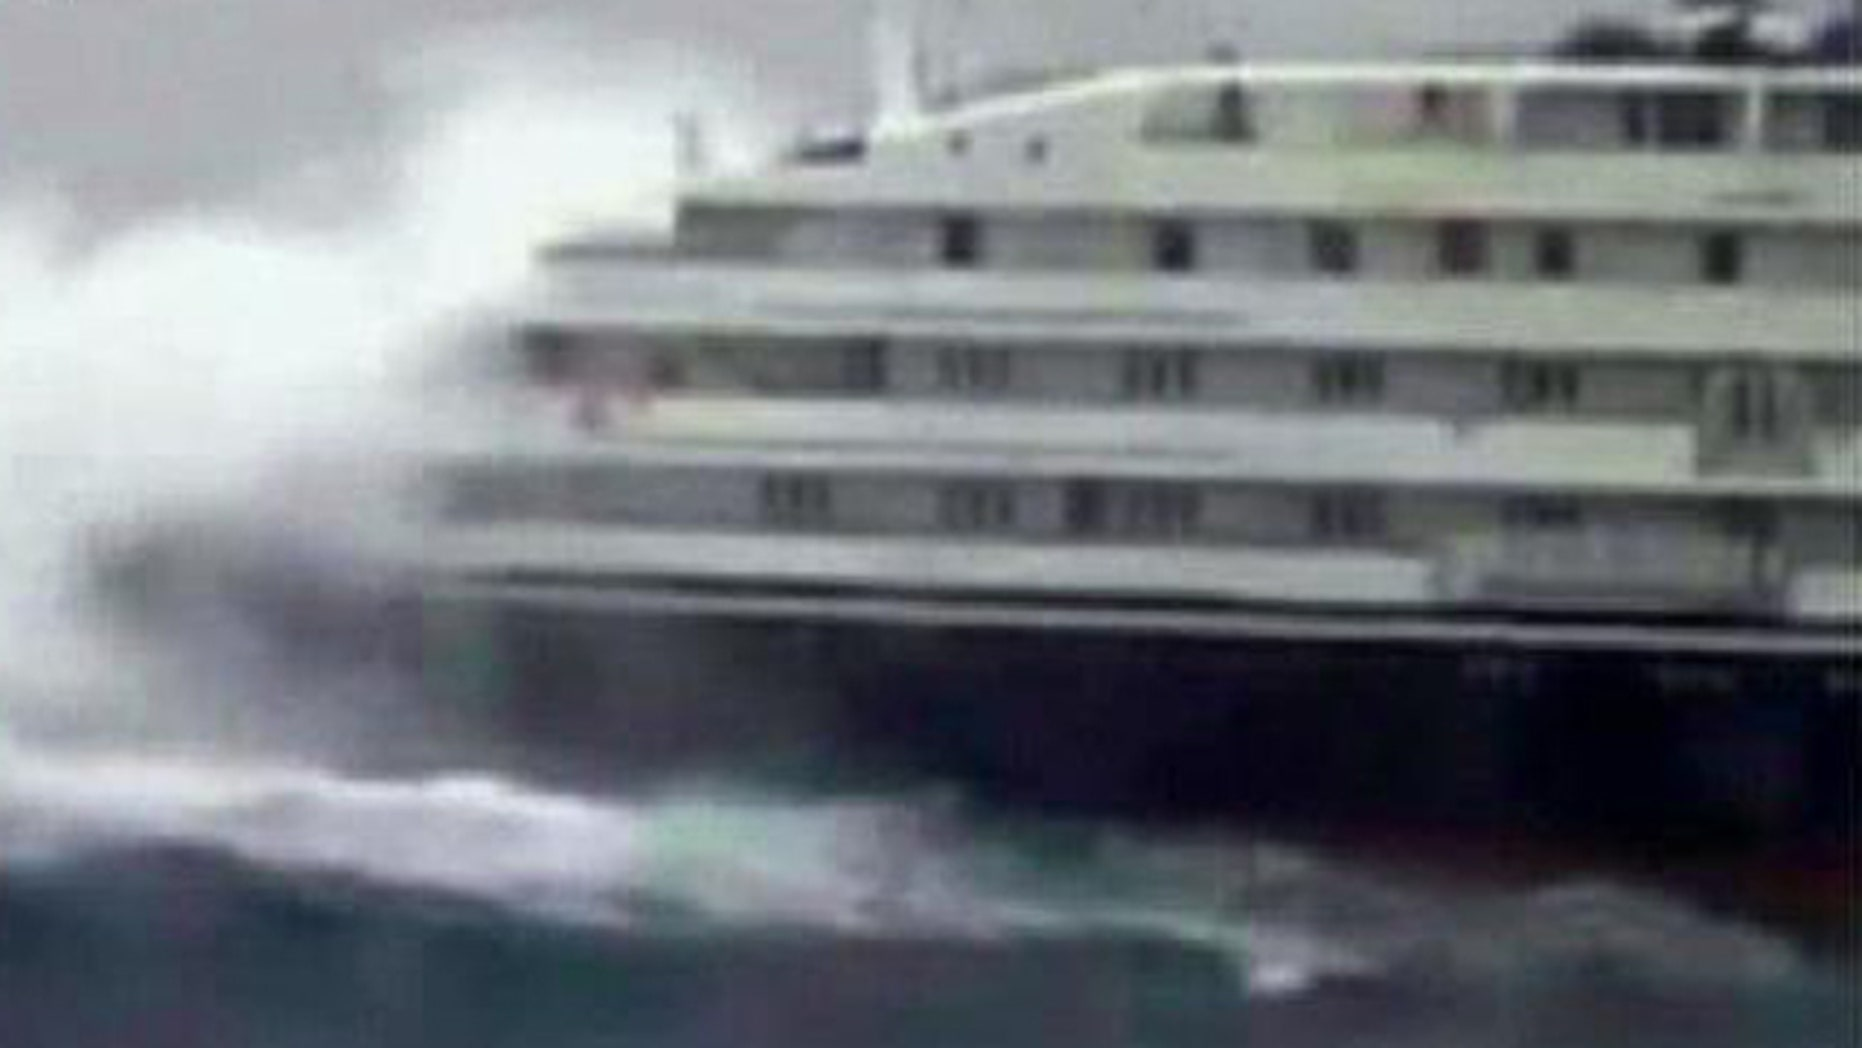 Massive waves knock out power to cruise ship.